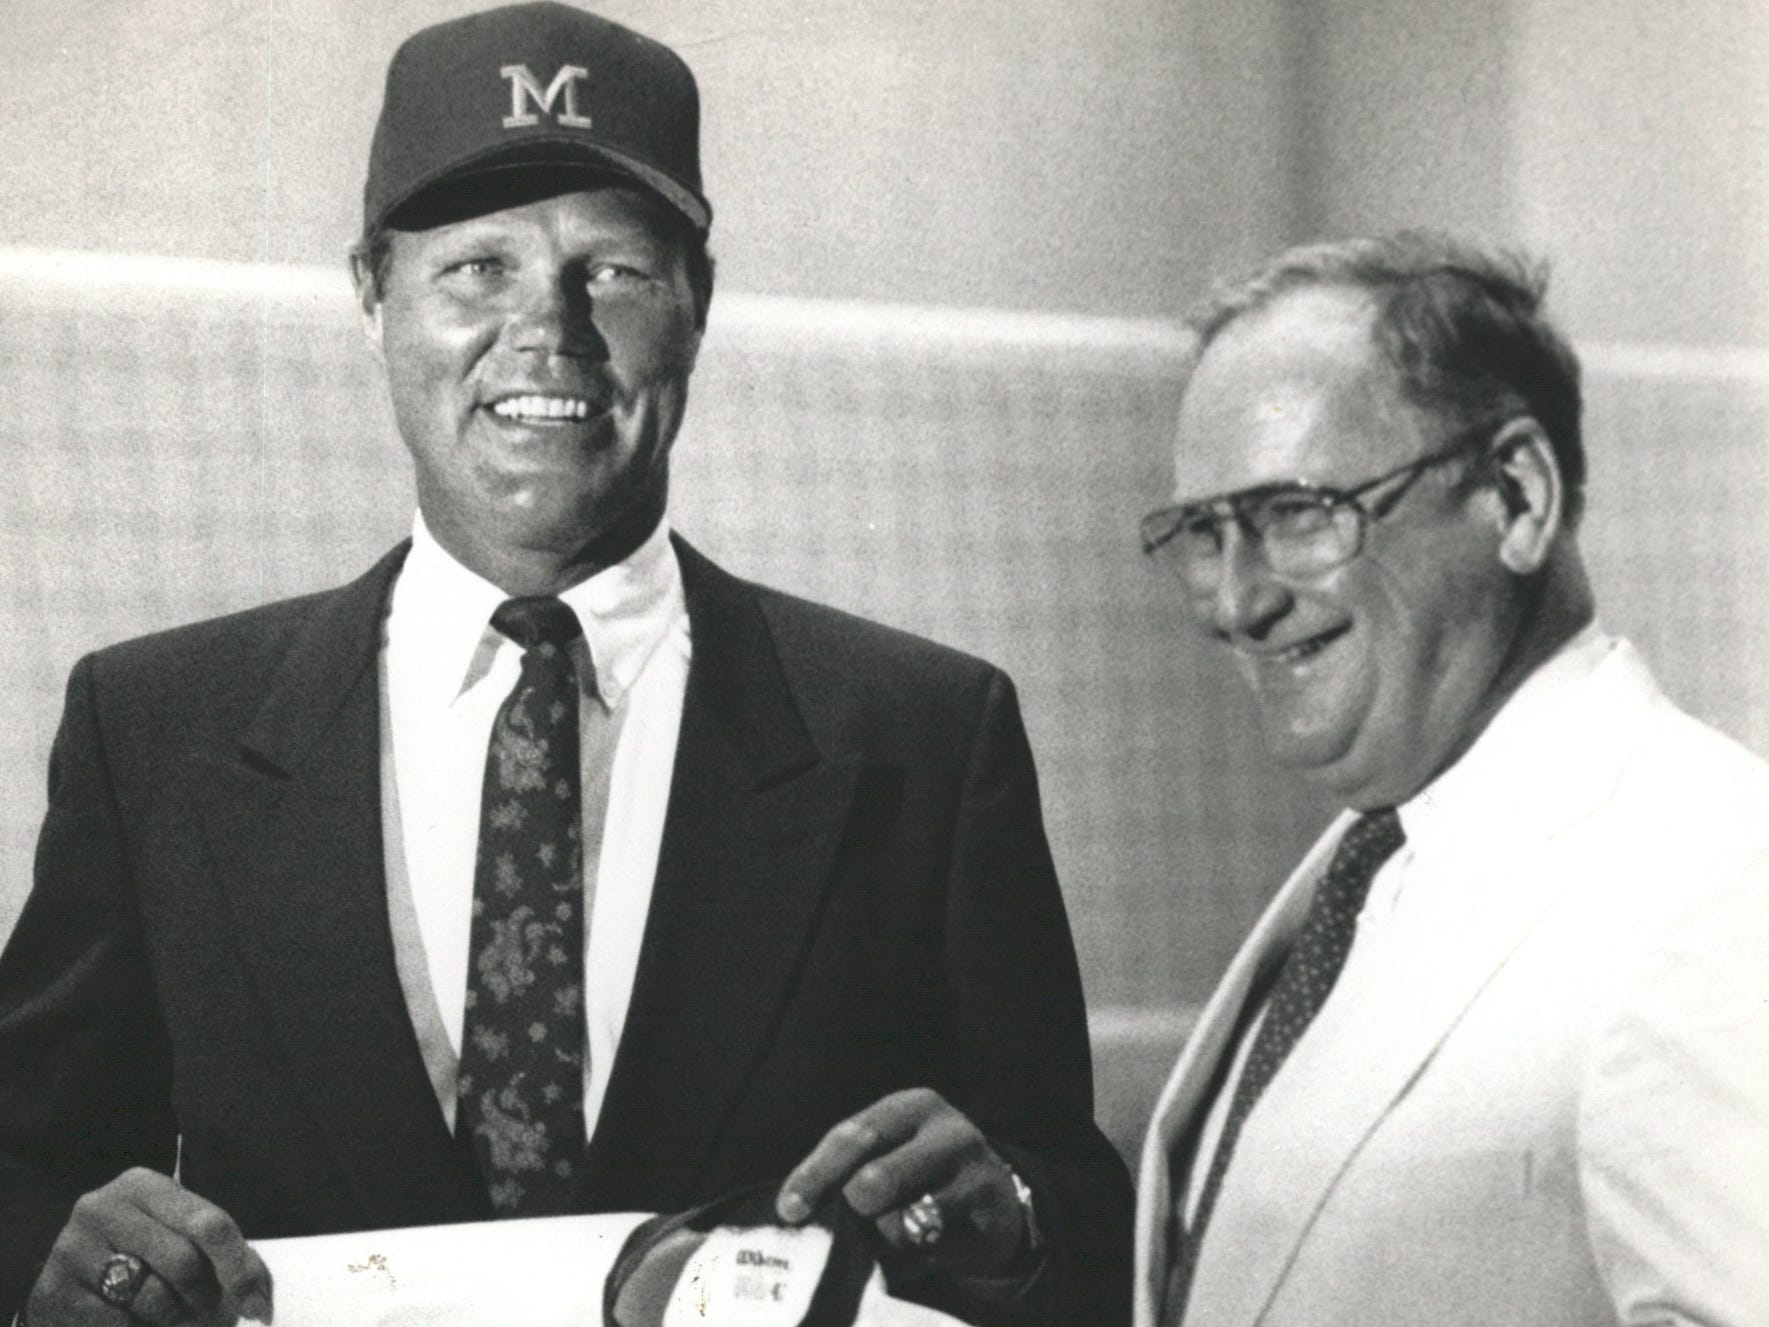 New Michigan baseball coach Bill Freehan holds the No.11 jersey - the number he wore when he at U-M - he received from athletic directer Bo Schembechler on Aug. 15, 1989.